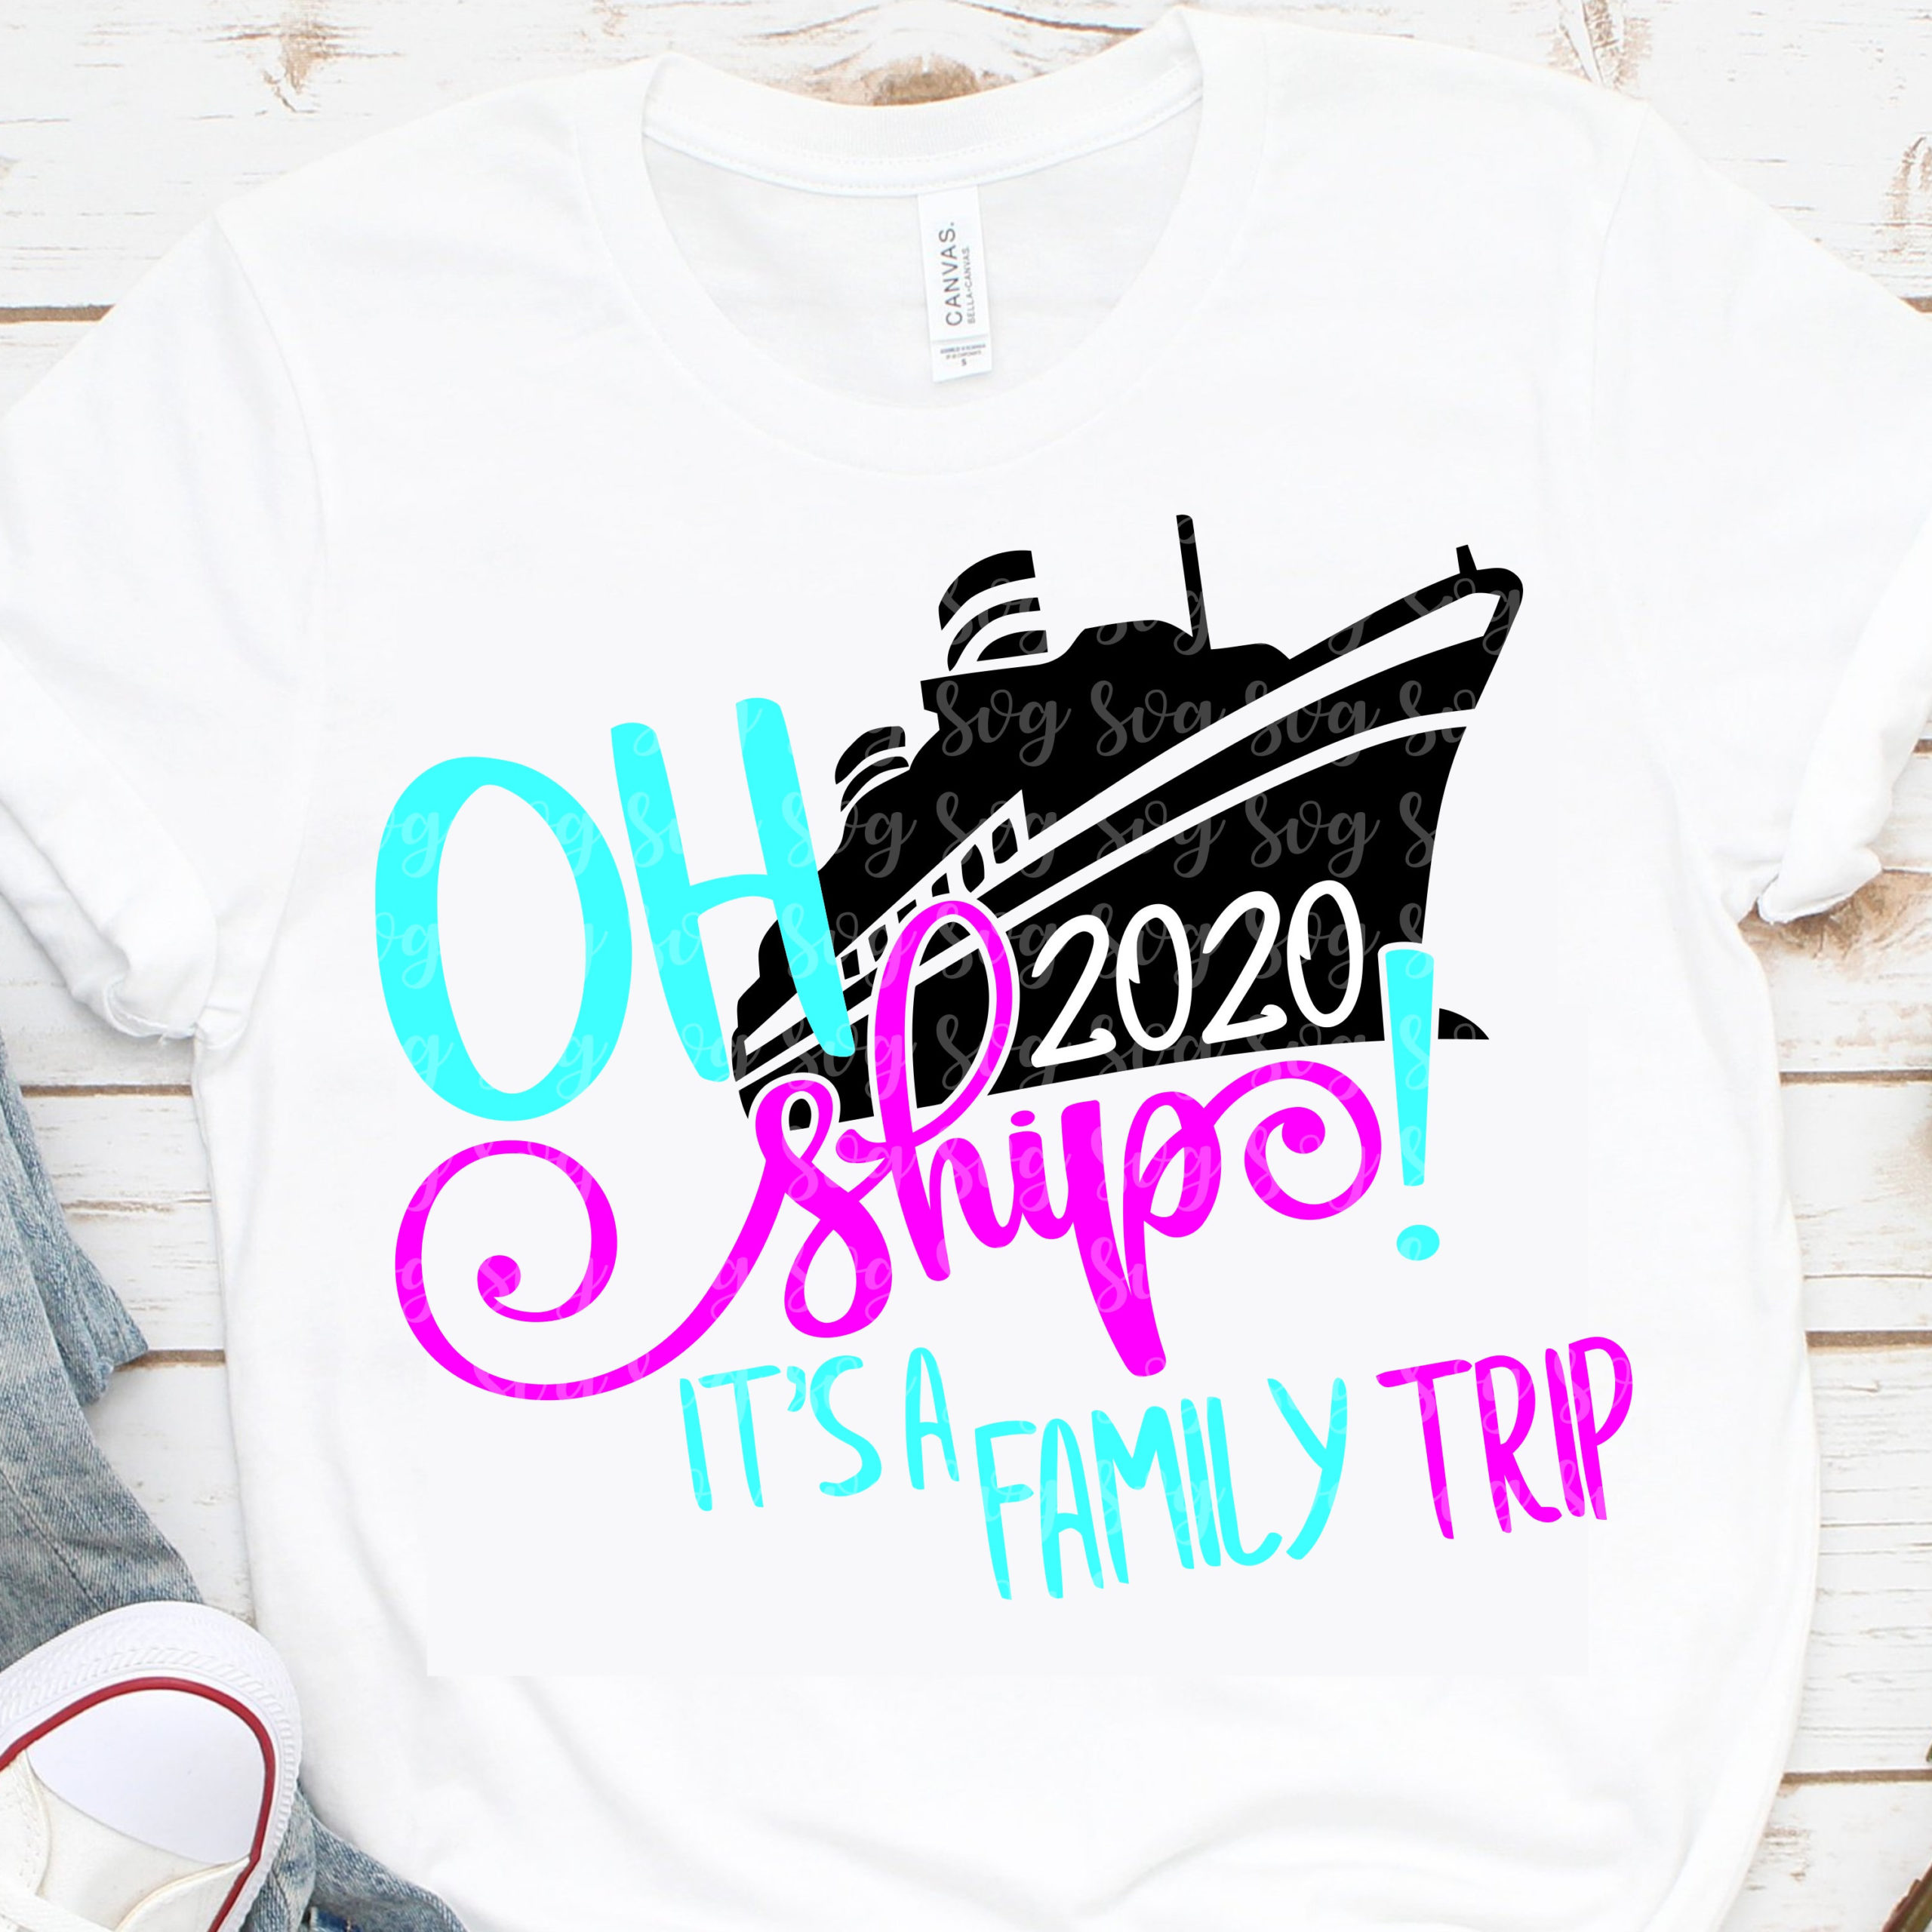 2020 Oh Ship Svg It S A Family Trip Svg Cruise Svg Family Vacation Svg Nautical Svg Boat Svg Cruising Svg Vacation Svg Cruise Ship Svg Svg For Cricut